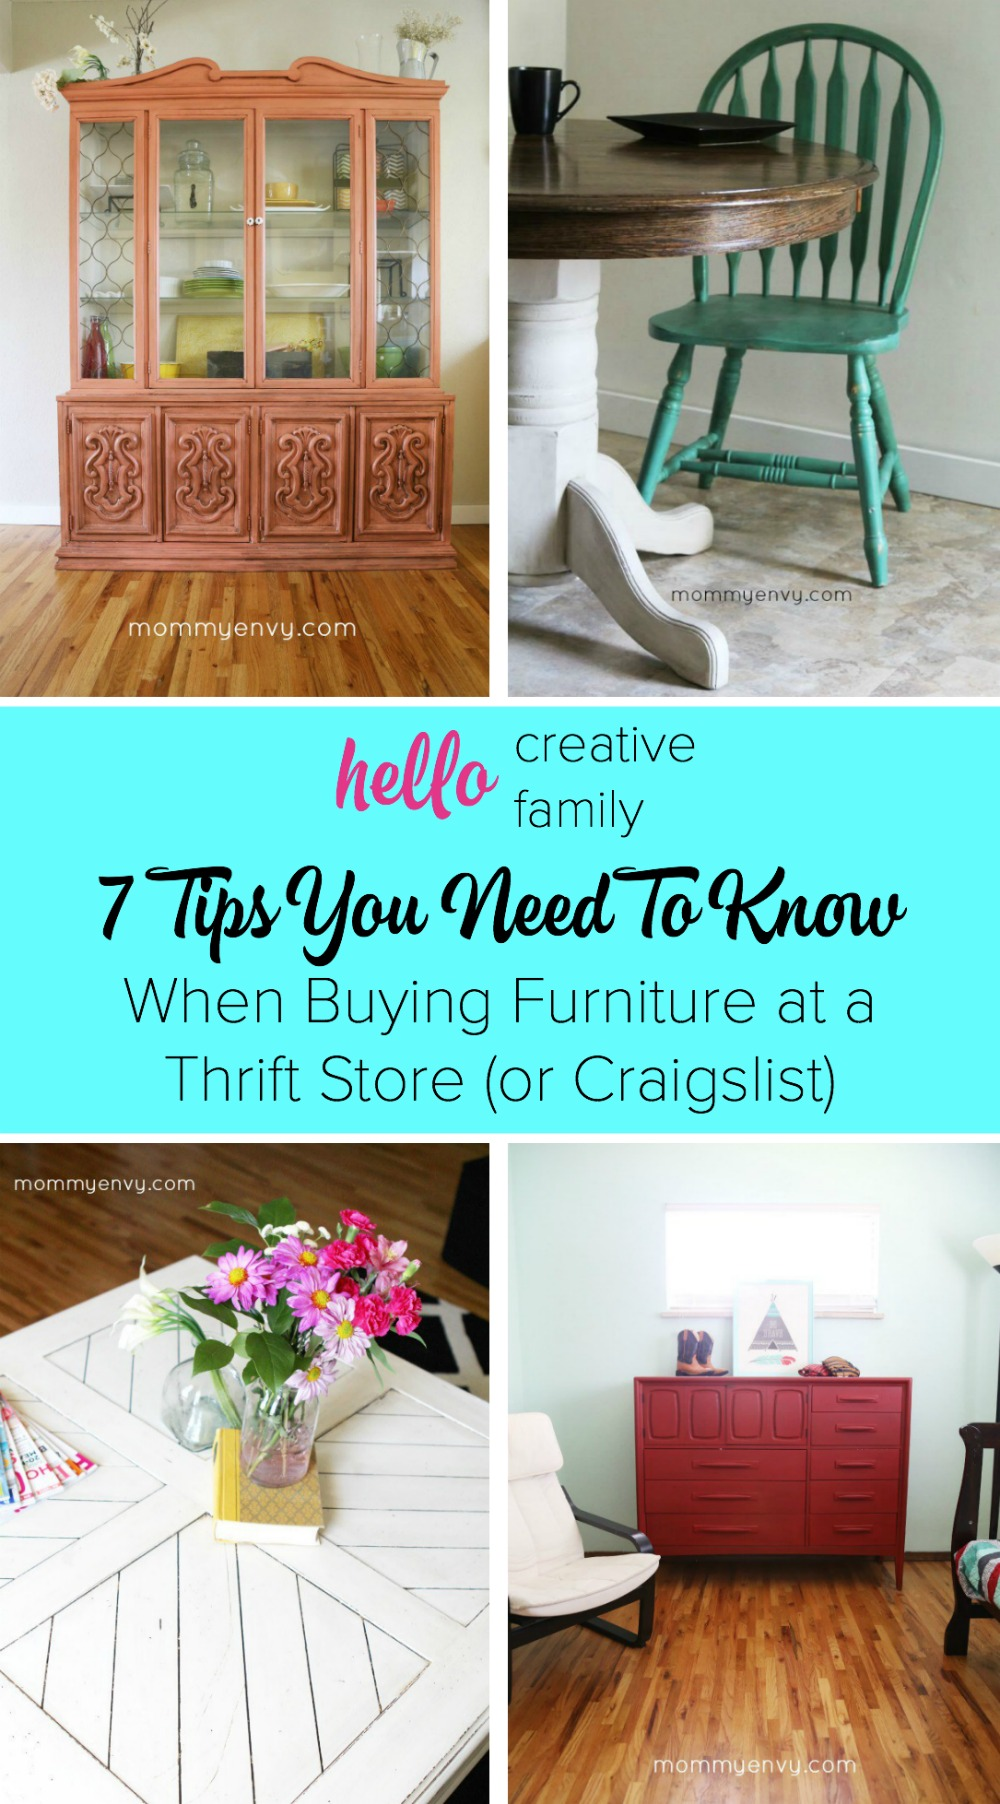 7 tips you need to know when buying furniture at a thrift store or craigslist